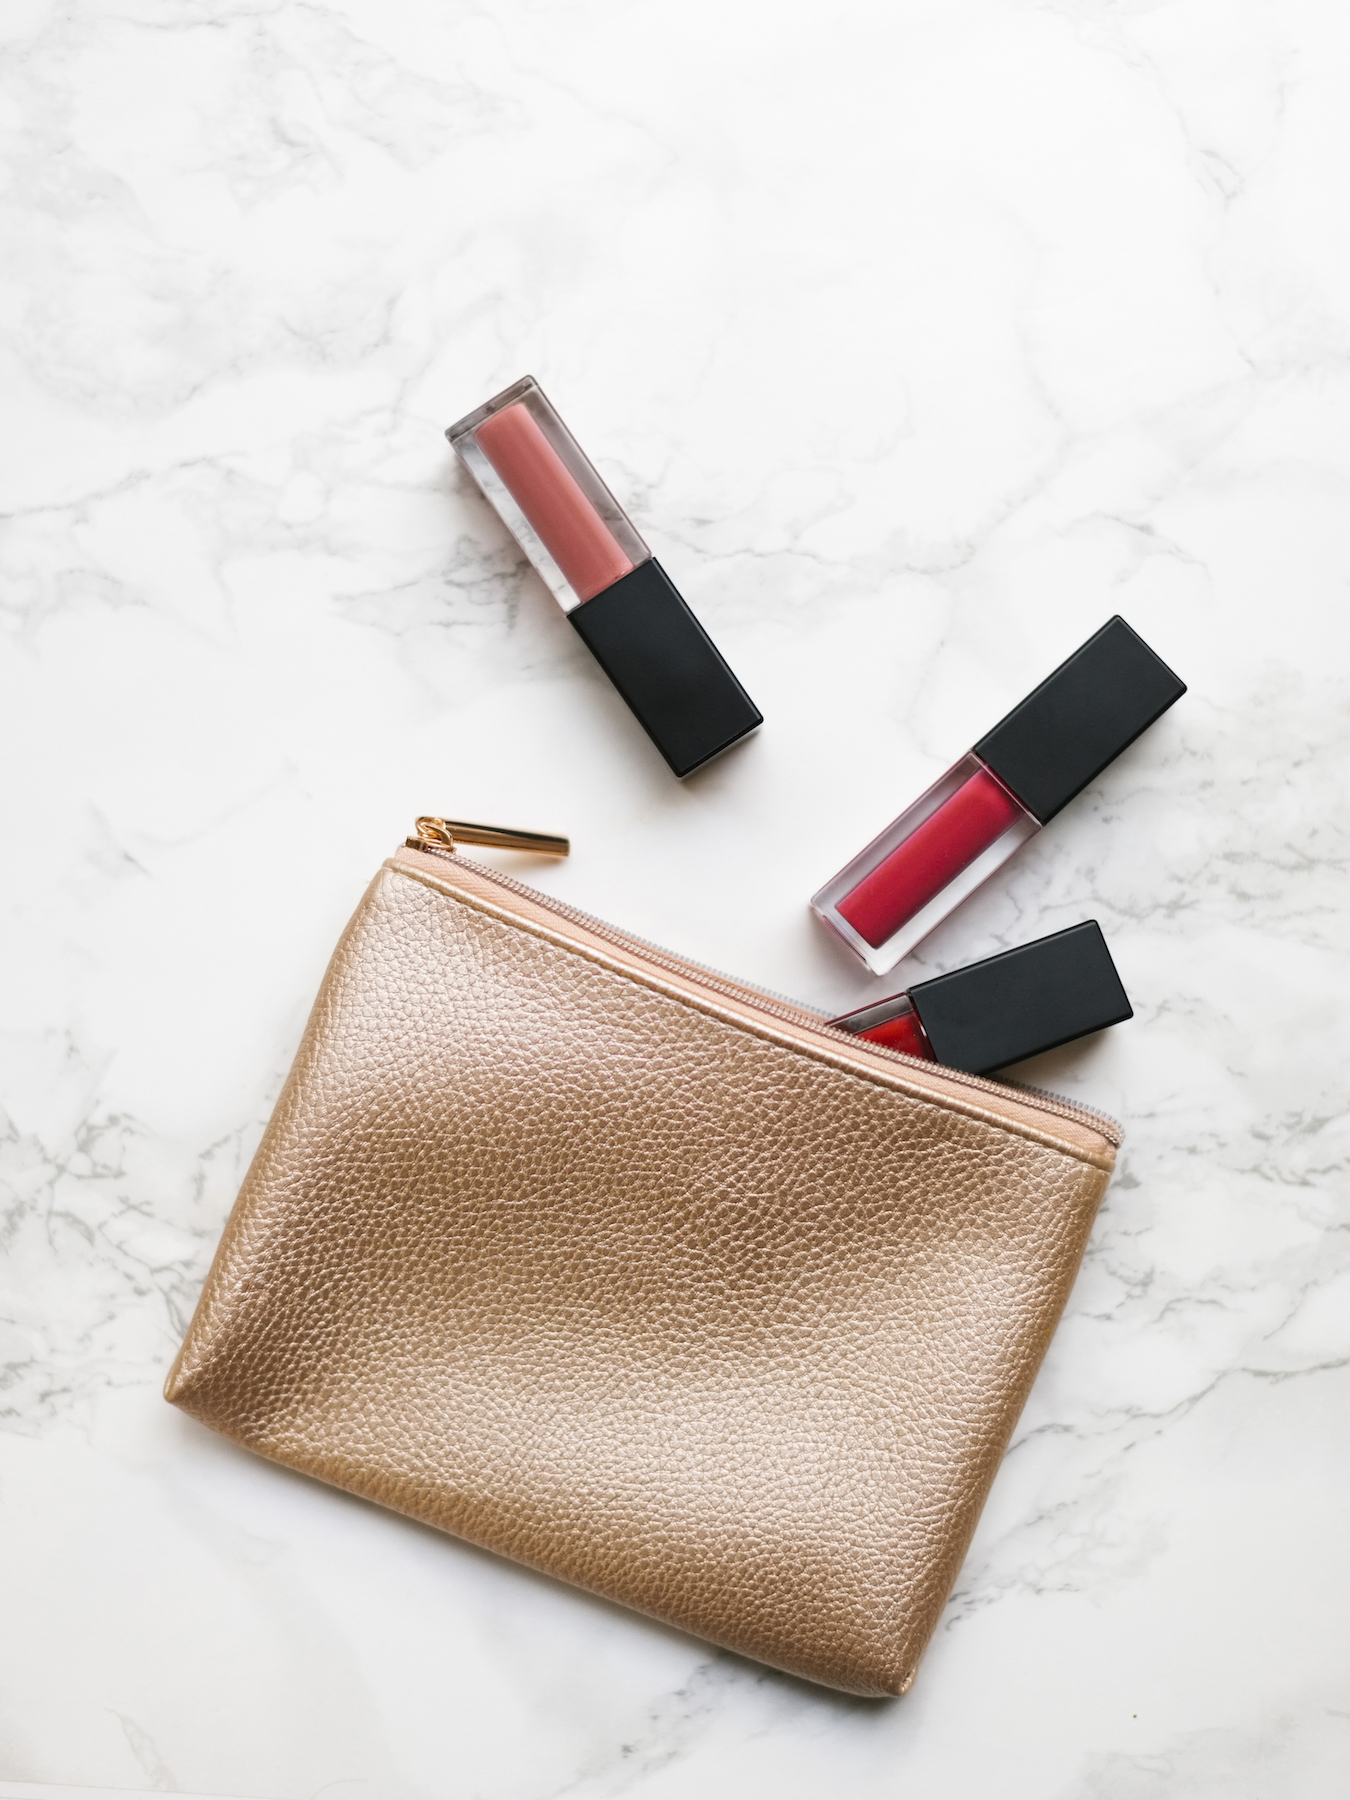 Makeup Bag with Lipsticks